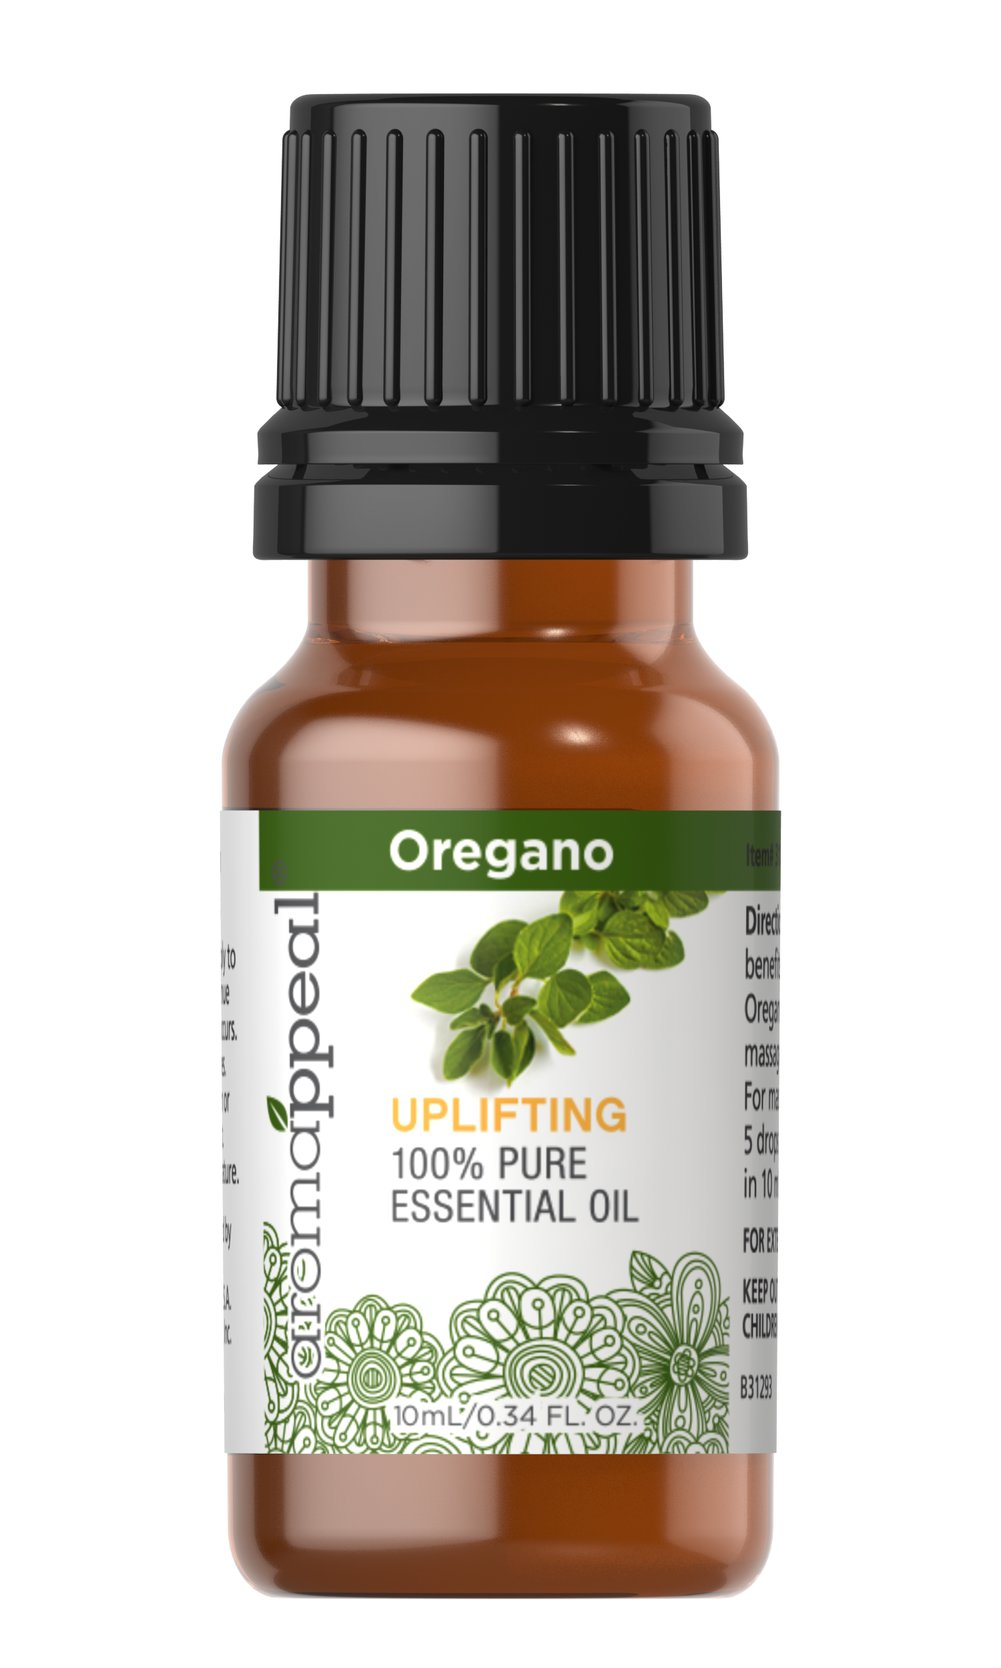 "Oregano 100% Pure Essential Oil <p>Delight your senses with the total body purification of Oregano Oil. Punctuated by its strong, spicy, herbal aroma, Oregano is a cleansing, invigorating oil that can leave you feeling totally revitalized. </p><p><span class=""bold-pink"">Traditional Uses: </span>Respiratory health, cleansing and purifying, and revitalizing.<span class=""bold-pink""></span></p><p><span class=""bold-pink"